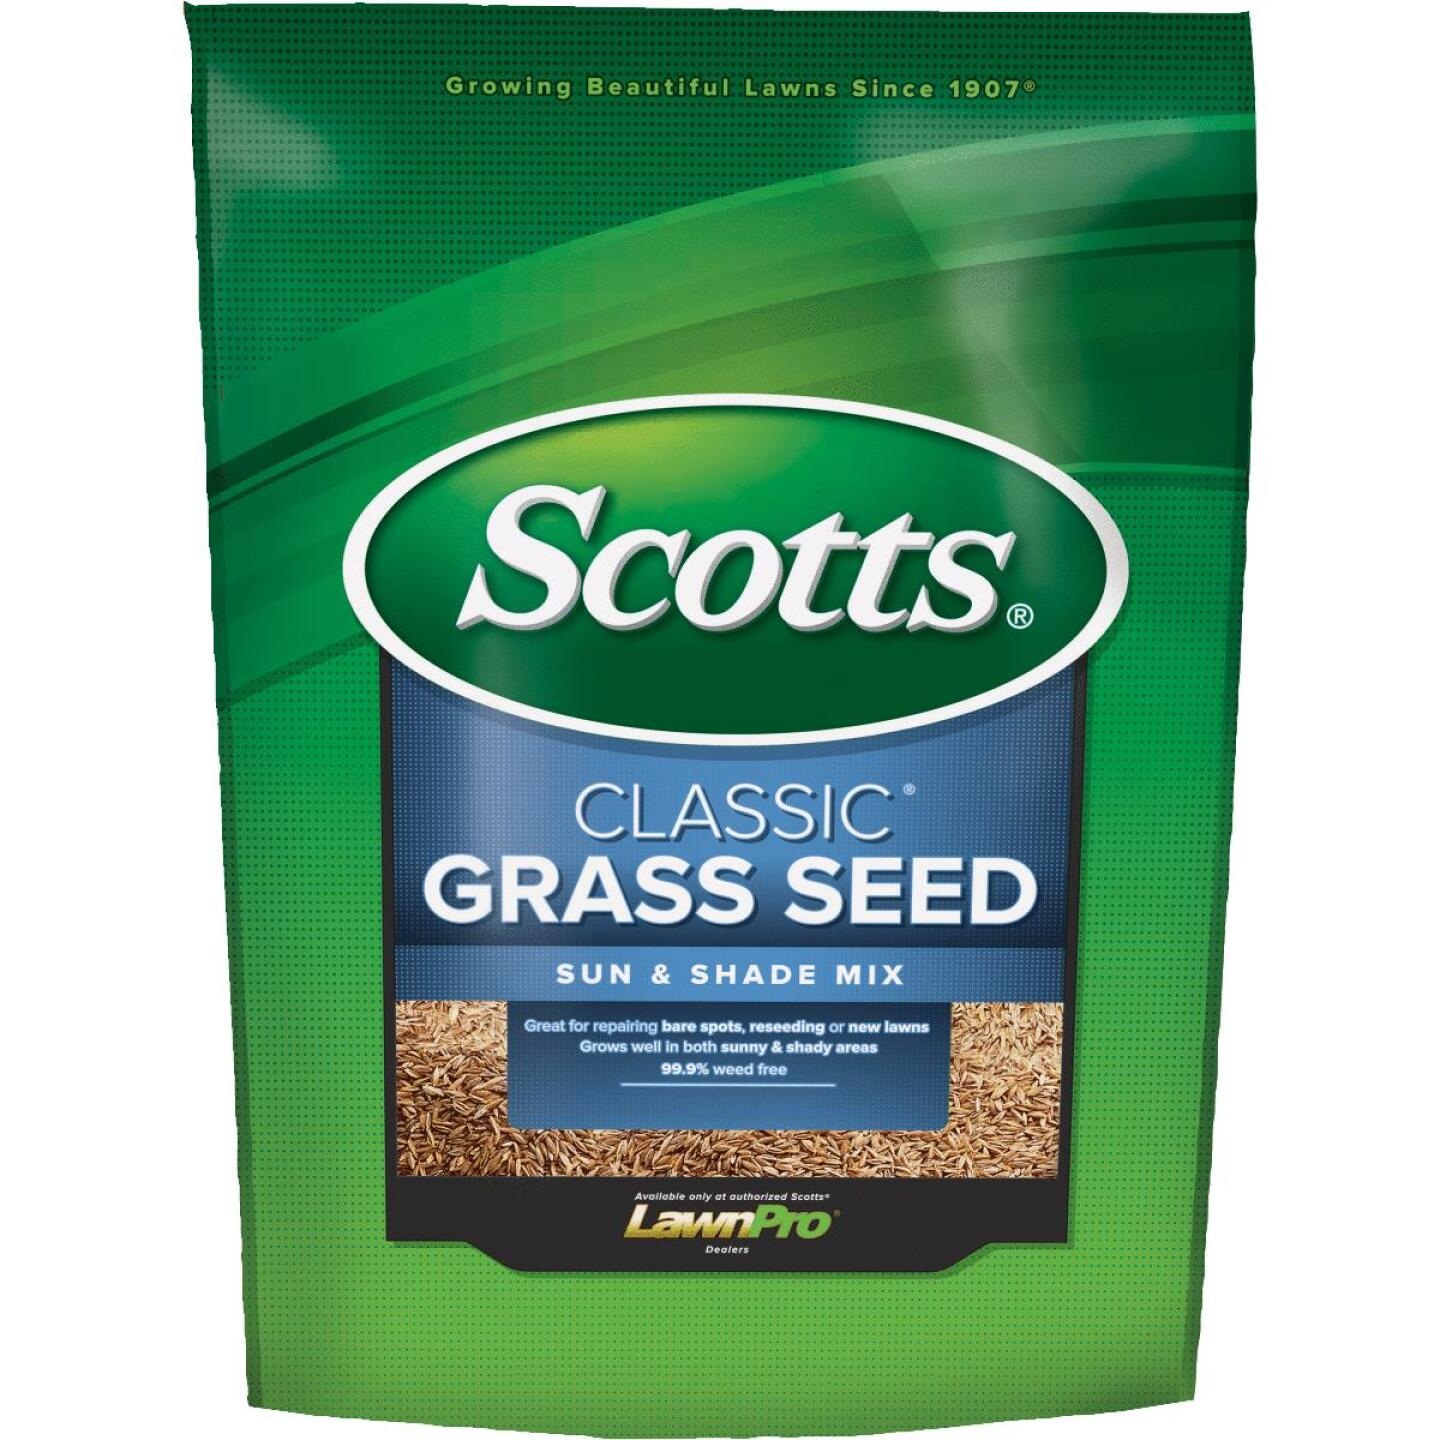 Scotts Classic 3 Lb. 1200 Sq. Ft. Coverage Sun & Shade Grass Seed Image 1